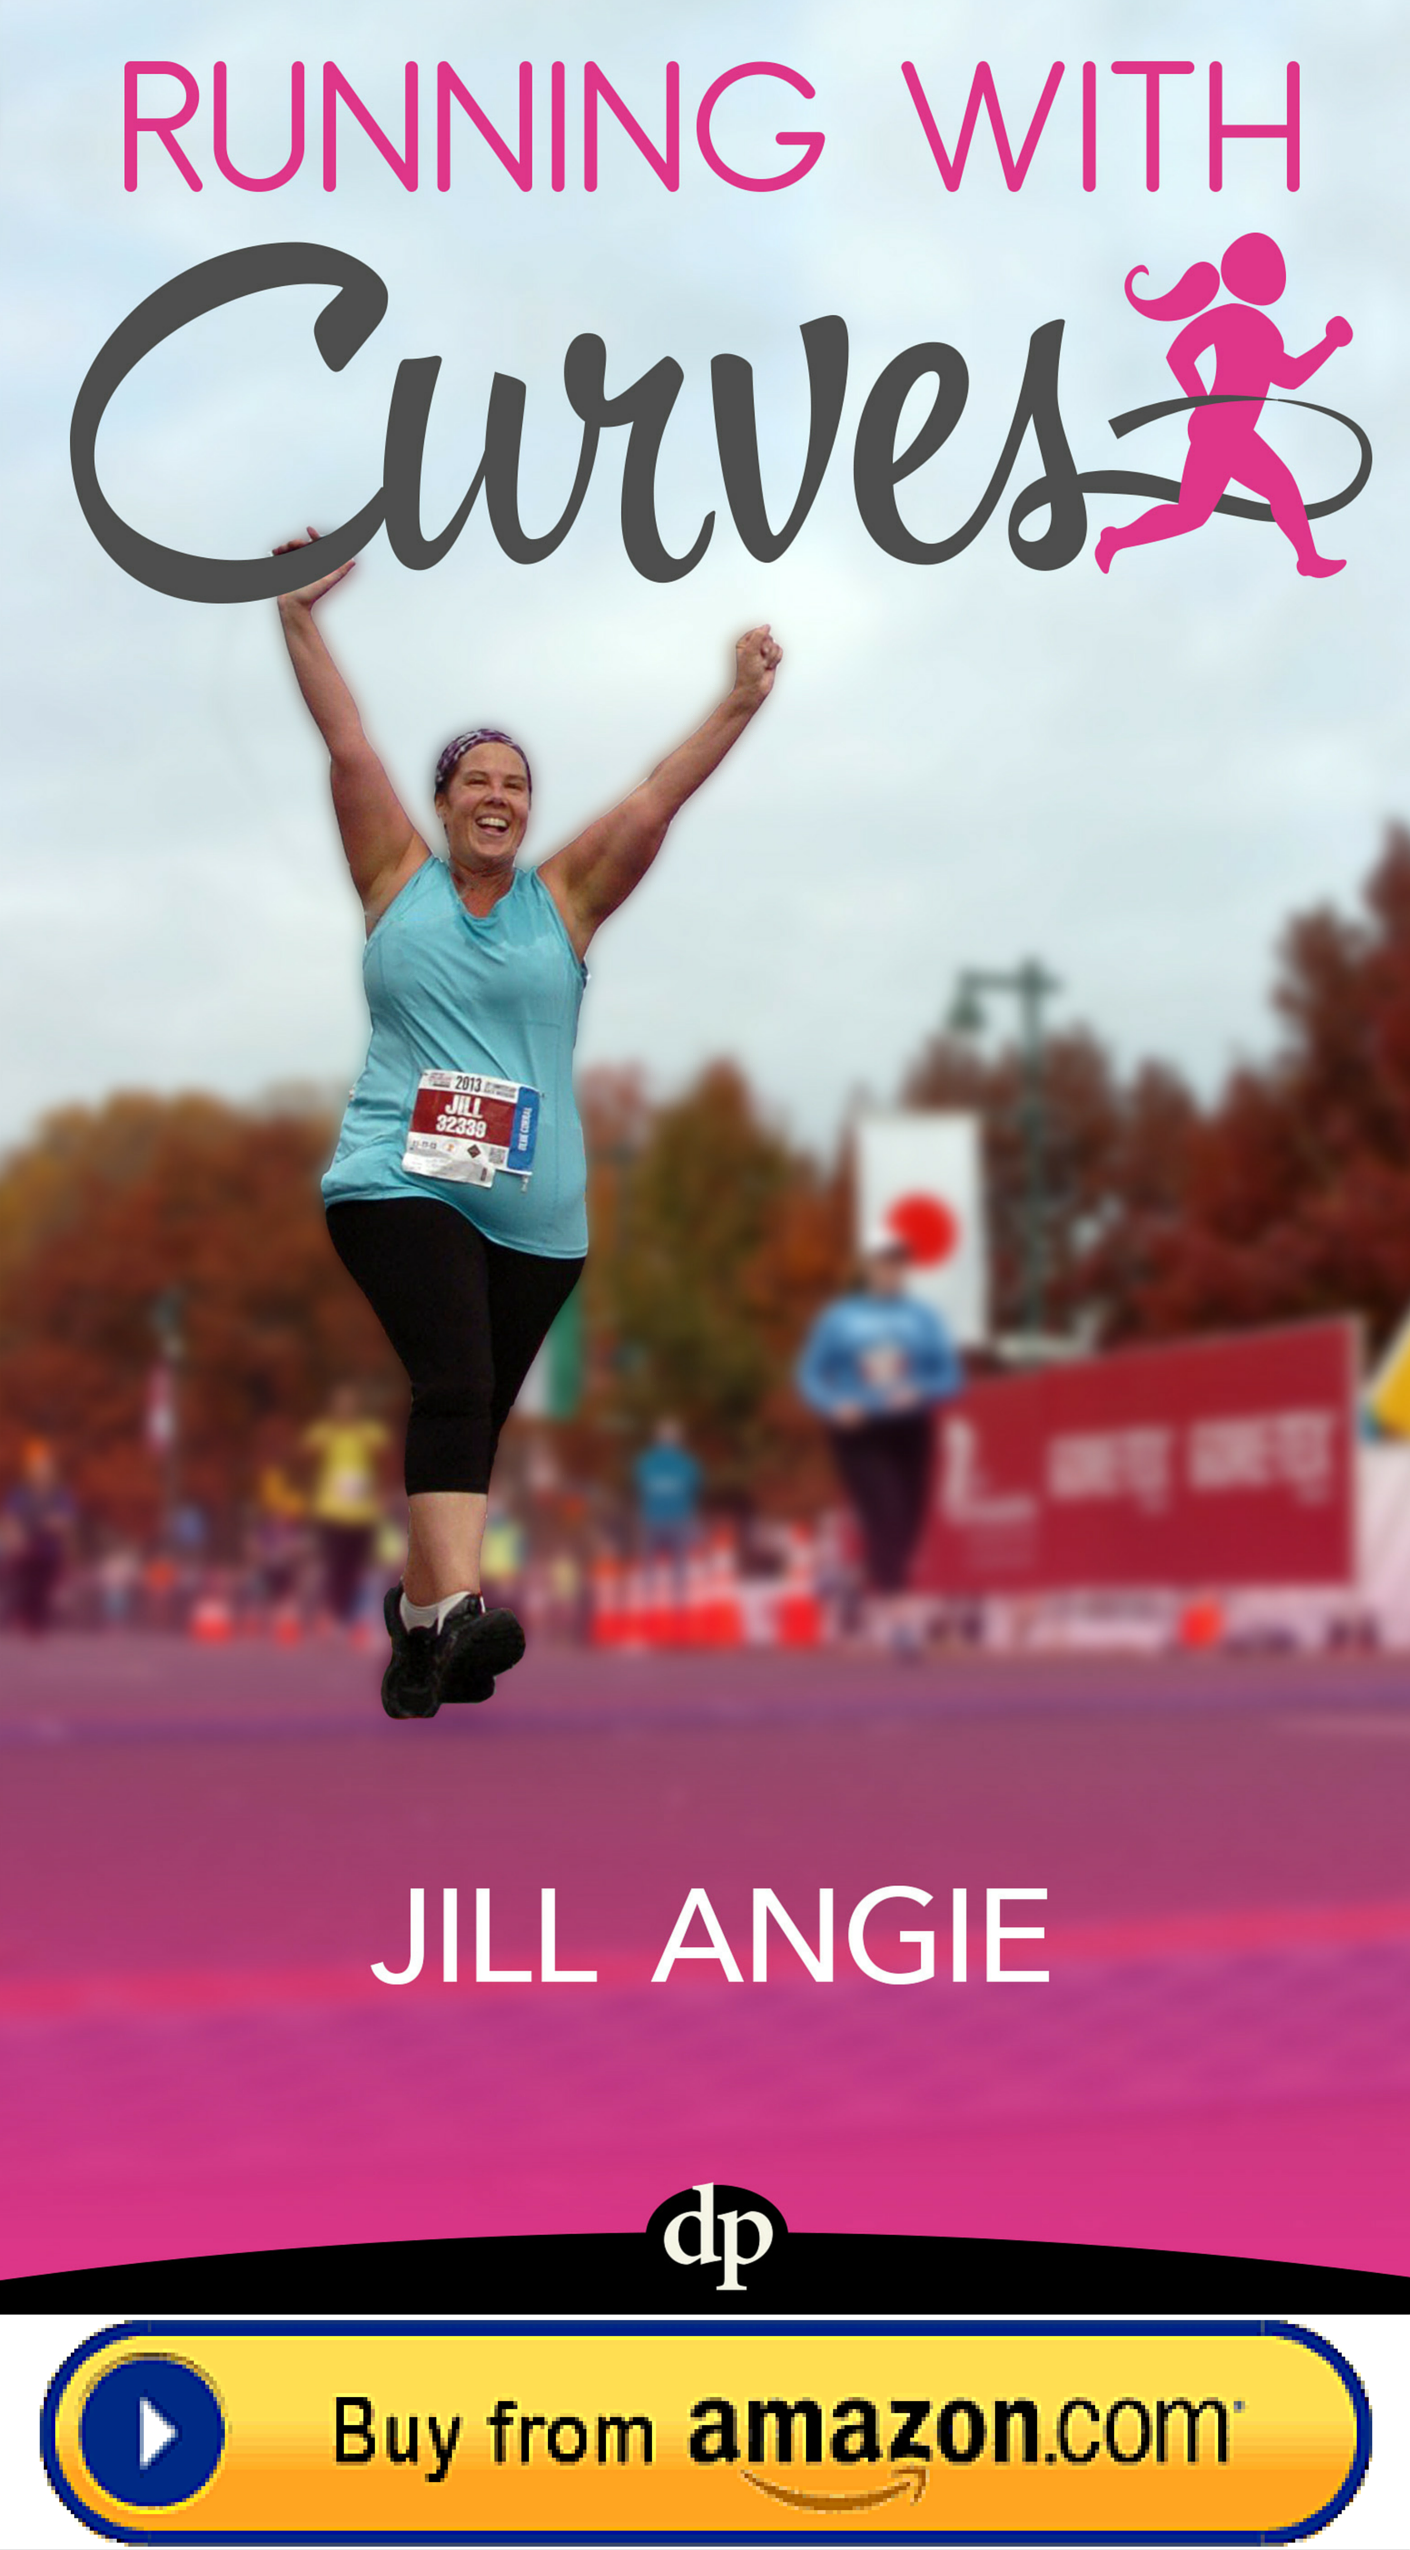 Running With Curves book by Jill Angie - Not Your Average Runner